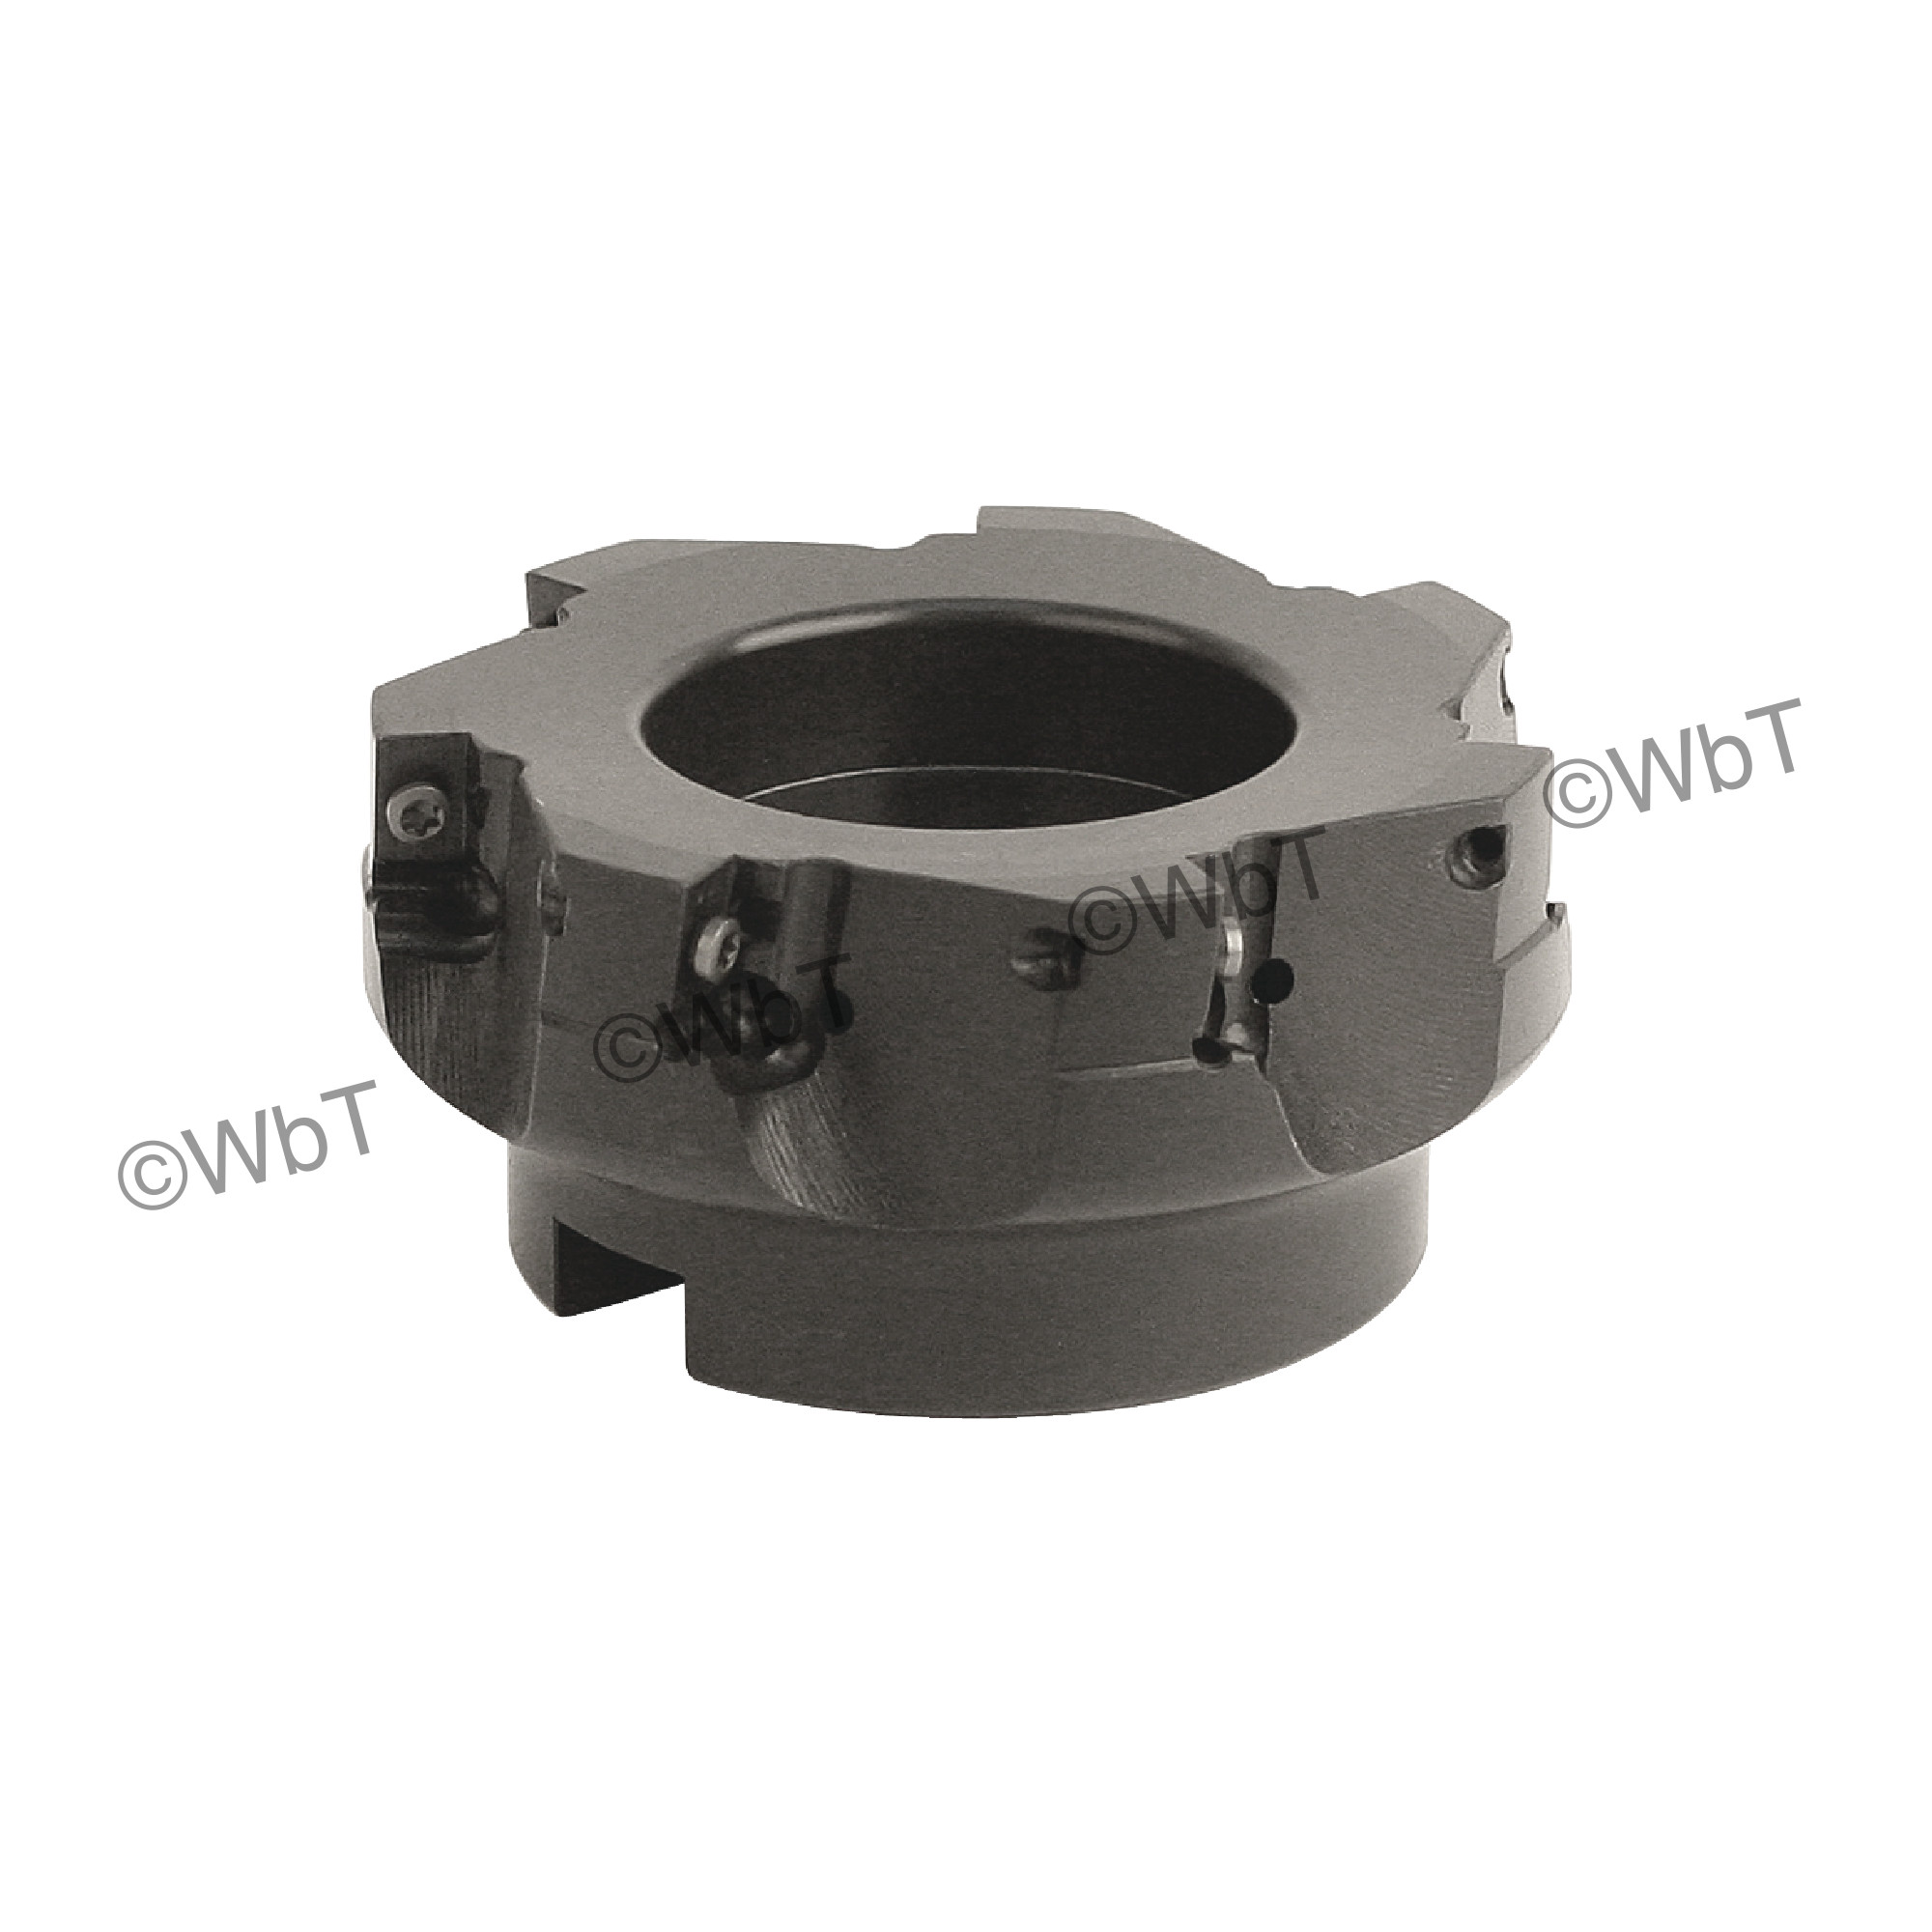 """AKUMA - APPC.16.400R-8 / 4.000"""" Face Mill for APKT1604 Inserts / Right Hand"""